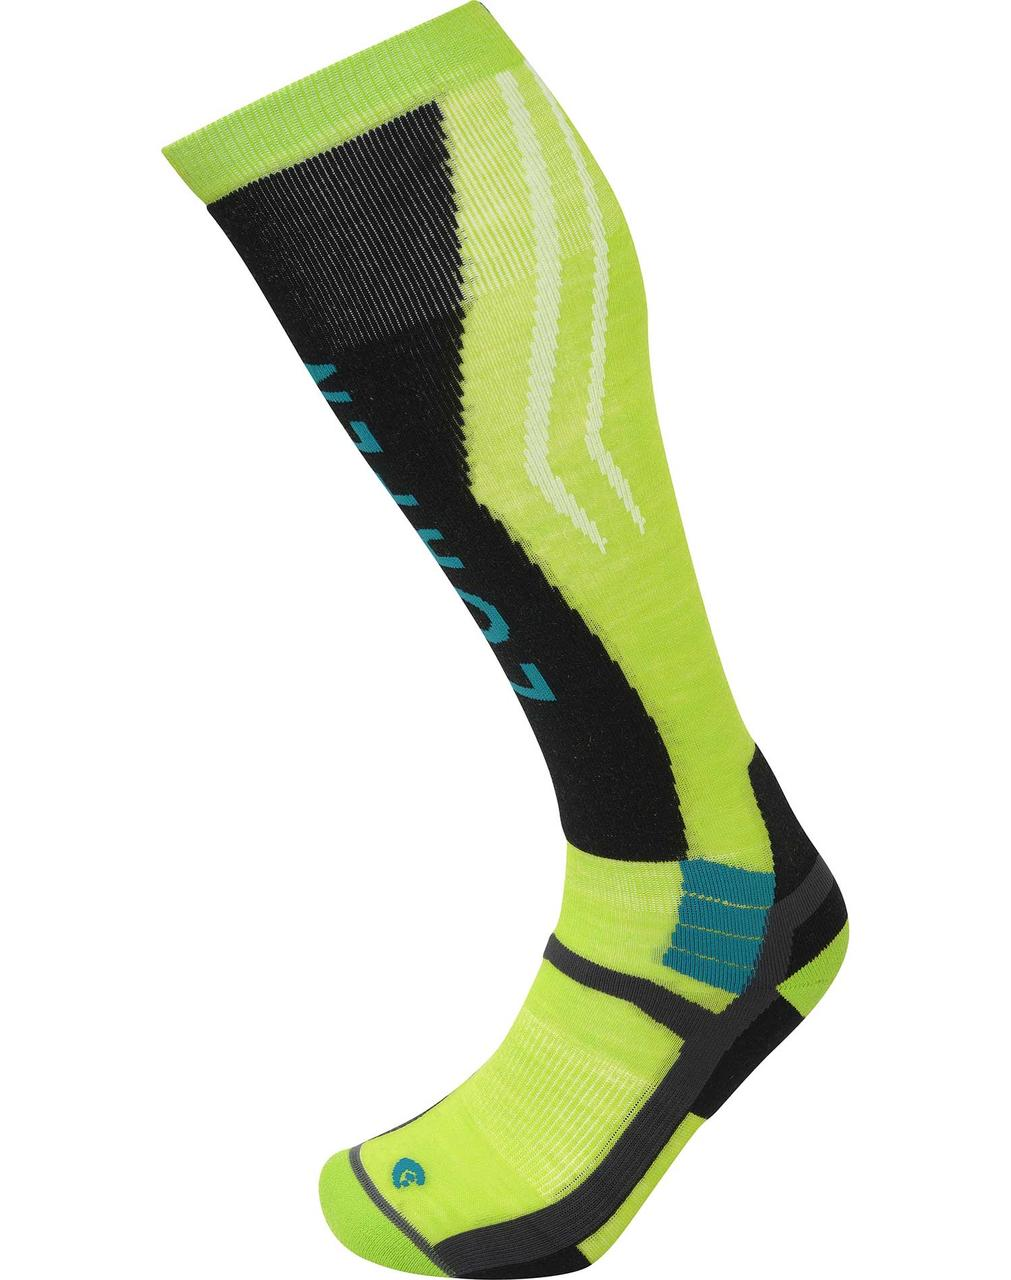 Носки Lorpen T3 Ski Mountaineering S3SMG Green Lime L (6210187 5448 L)